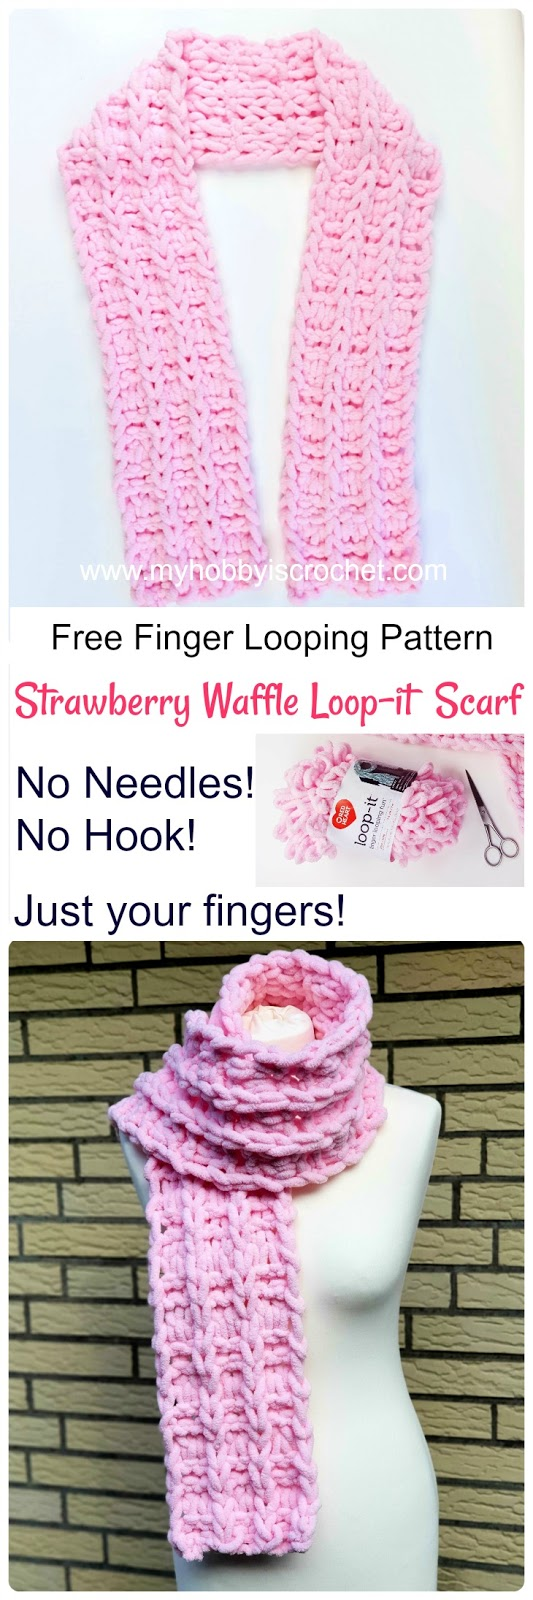 Strawberry Waffle - Loop it Scarf - Free Finger Looping Pattern